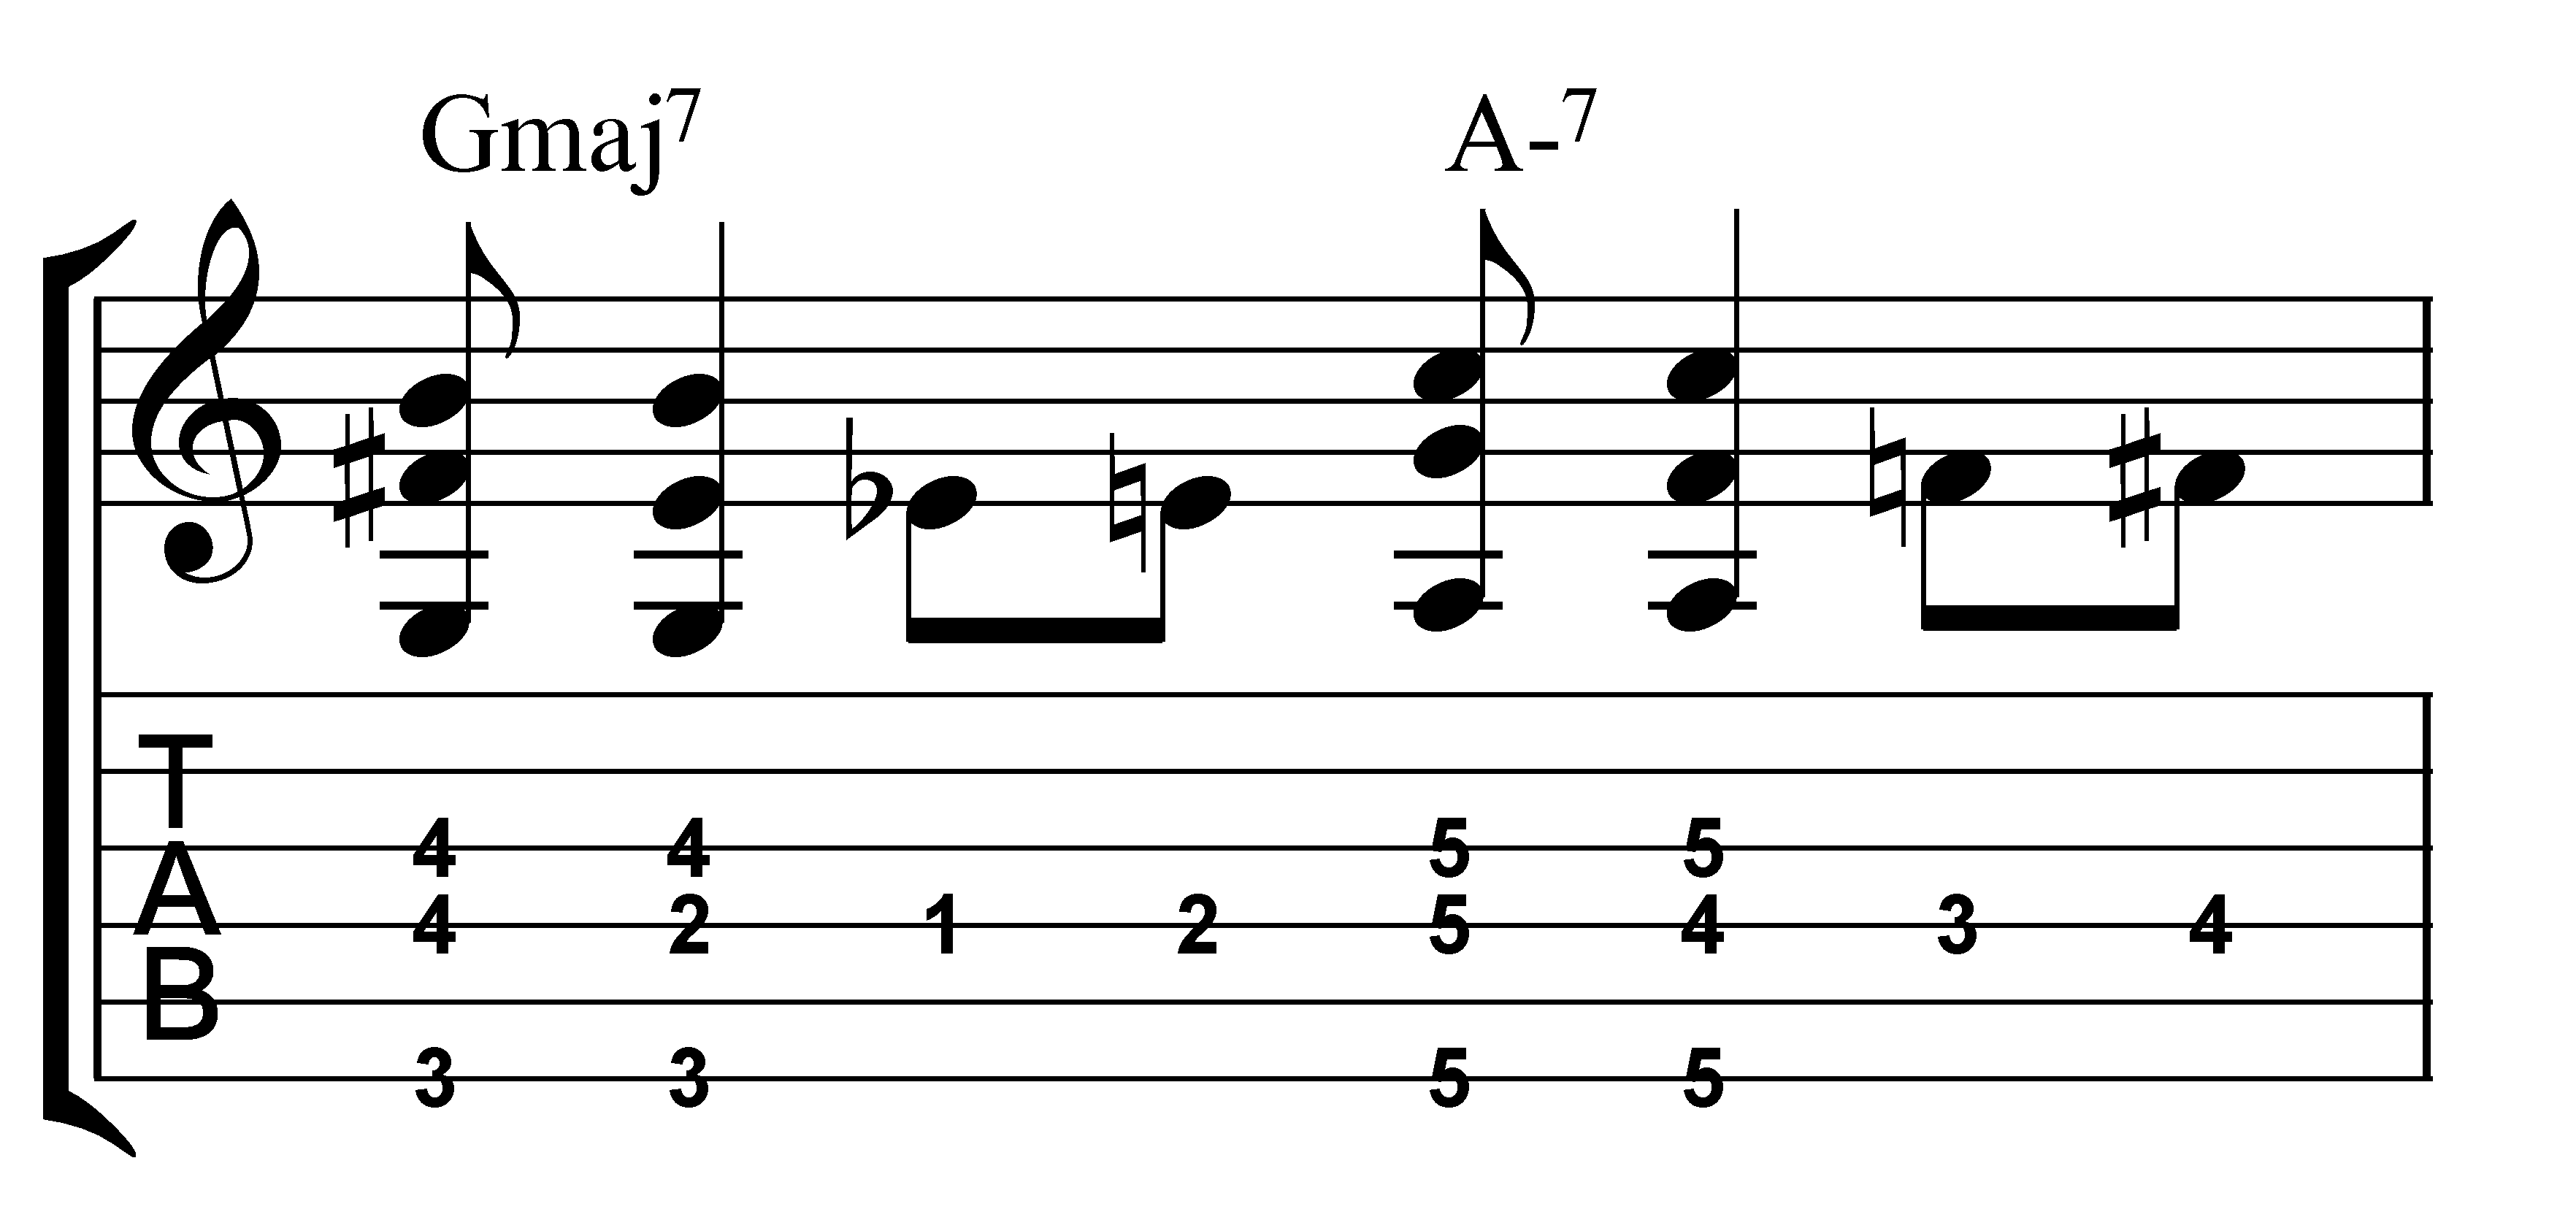 Easy Bm Chord Guitar Finger Position